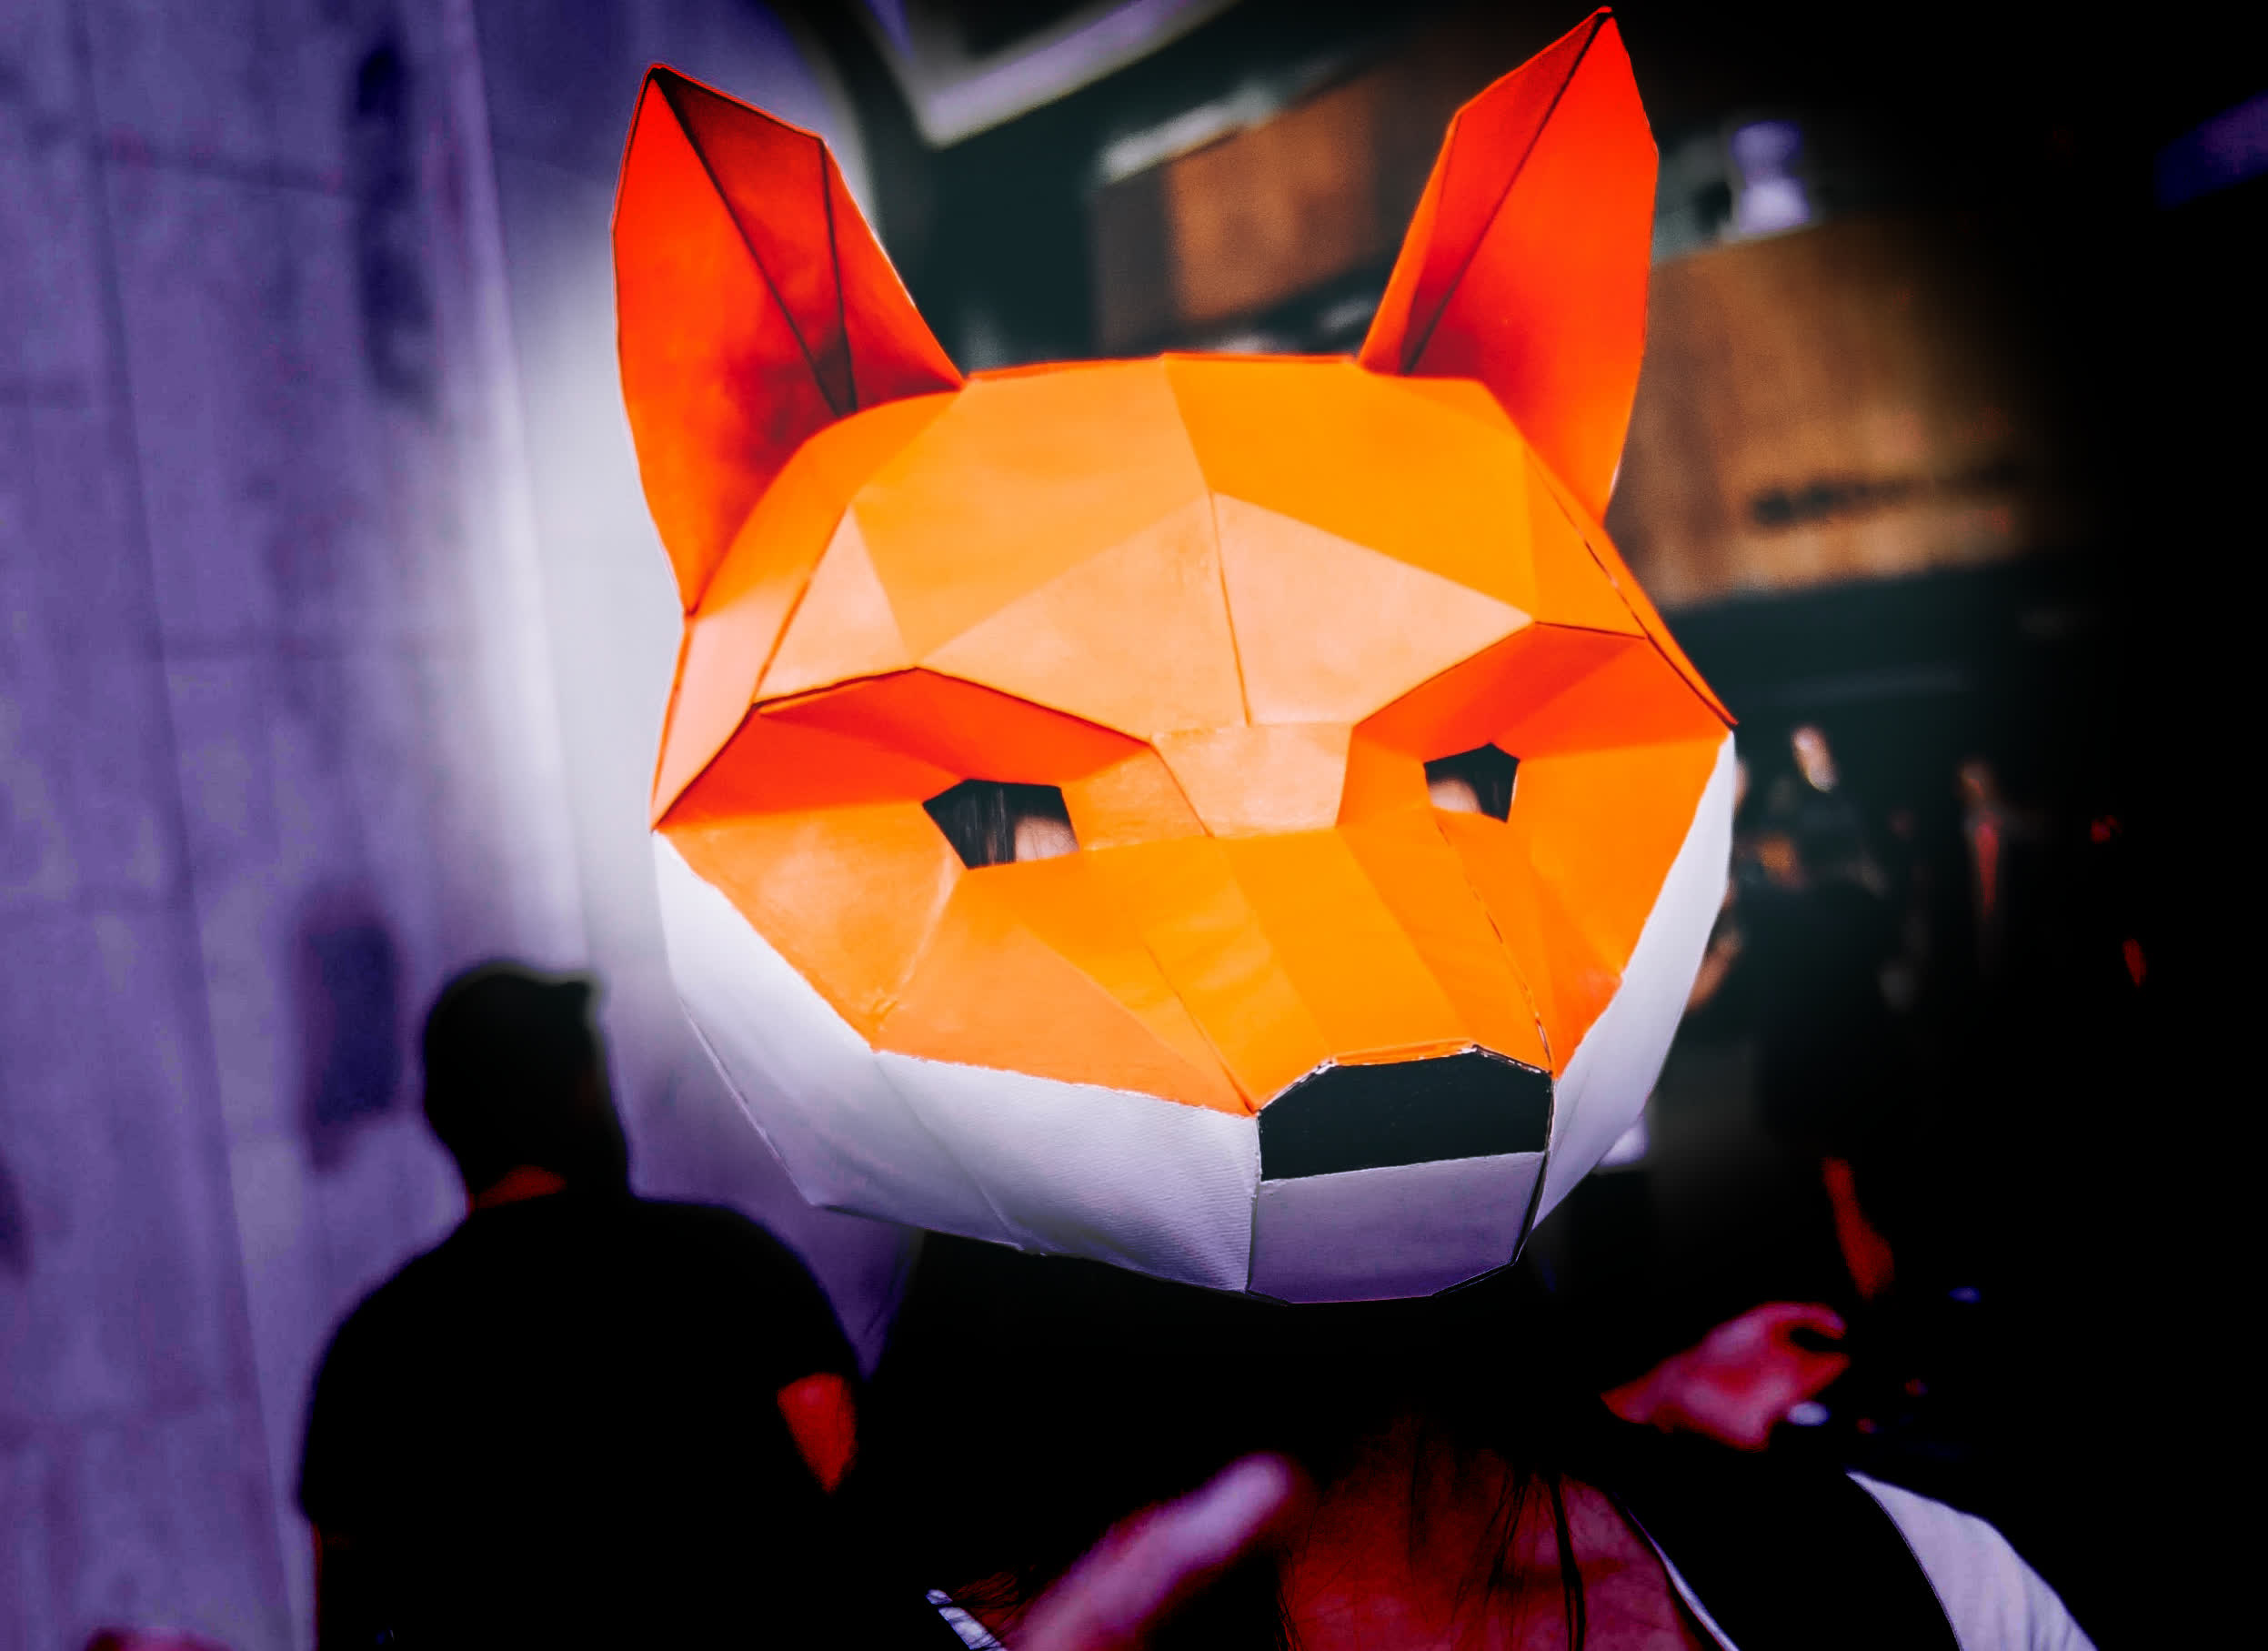 Mozilla is evaluating Firefox usage by changing the default search engine to Bing -